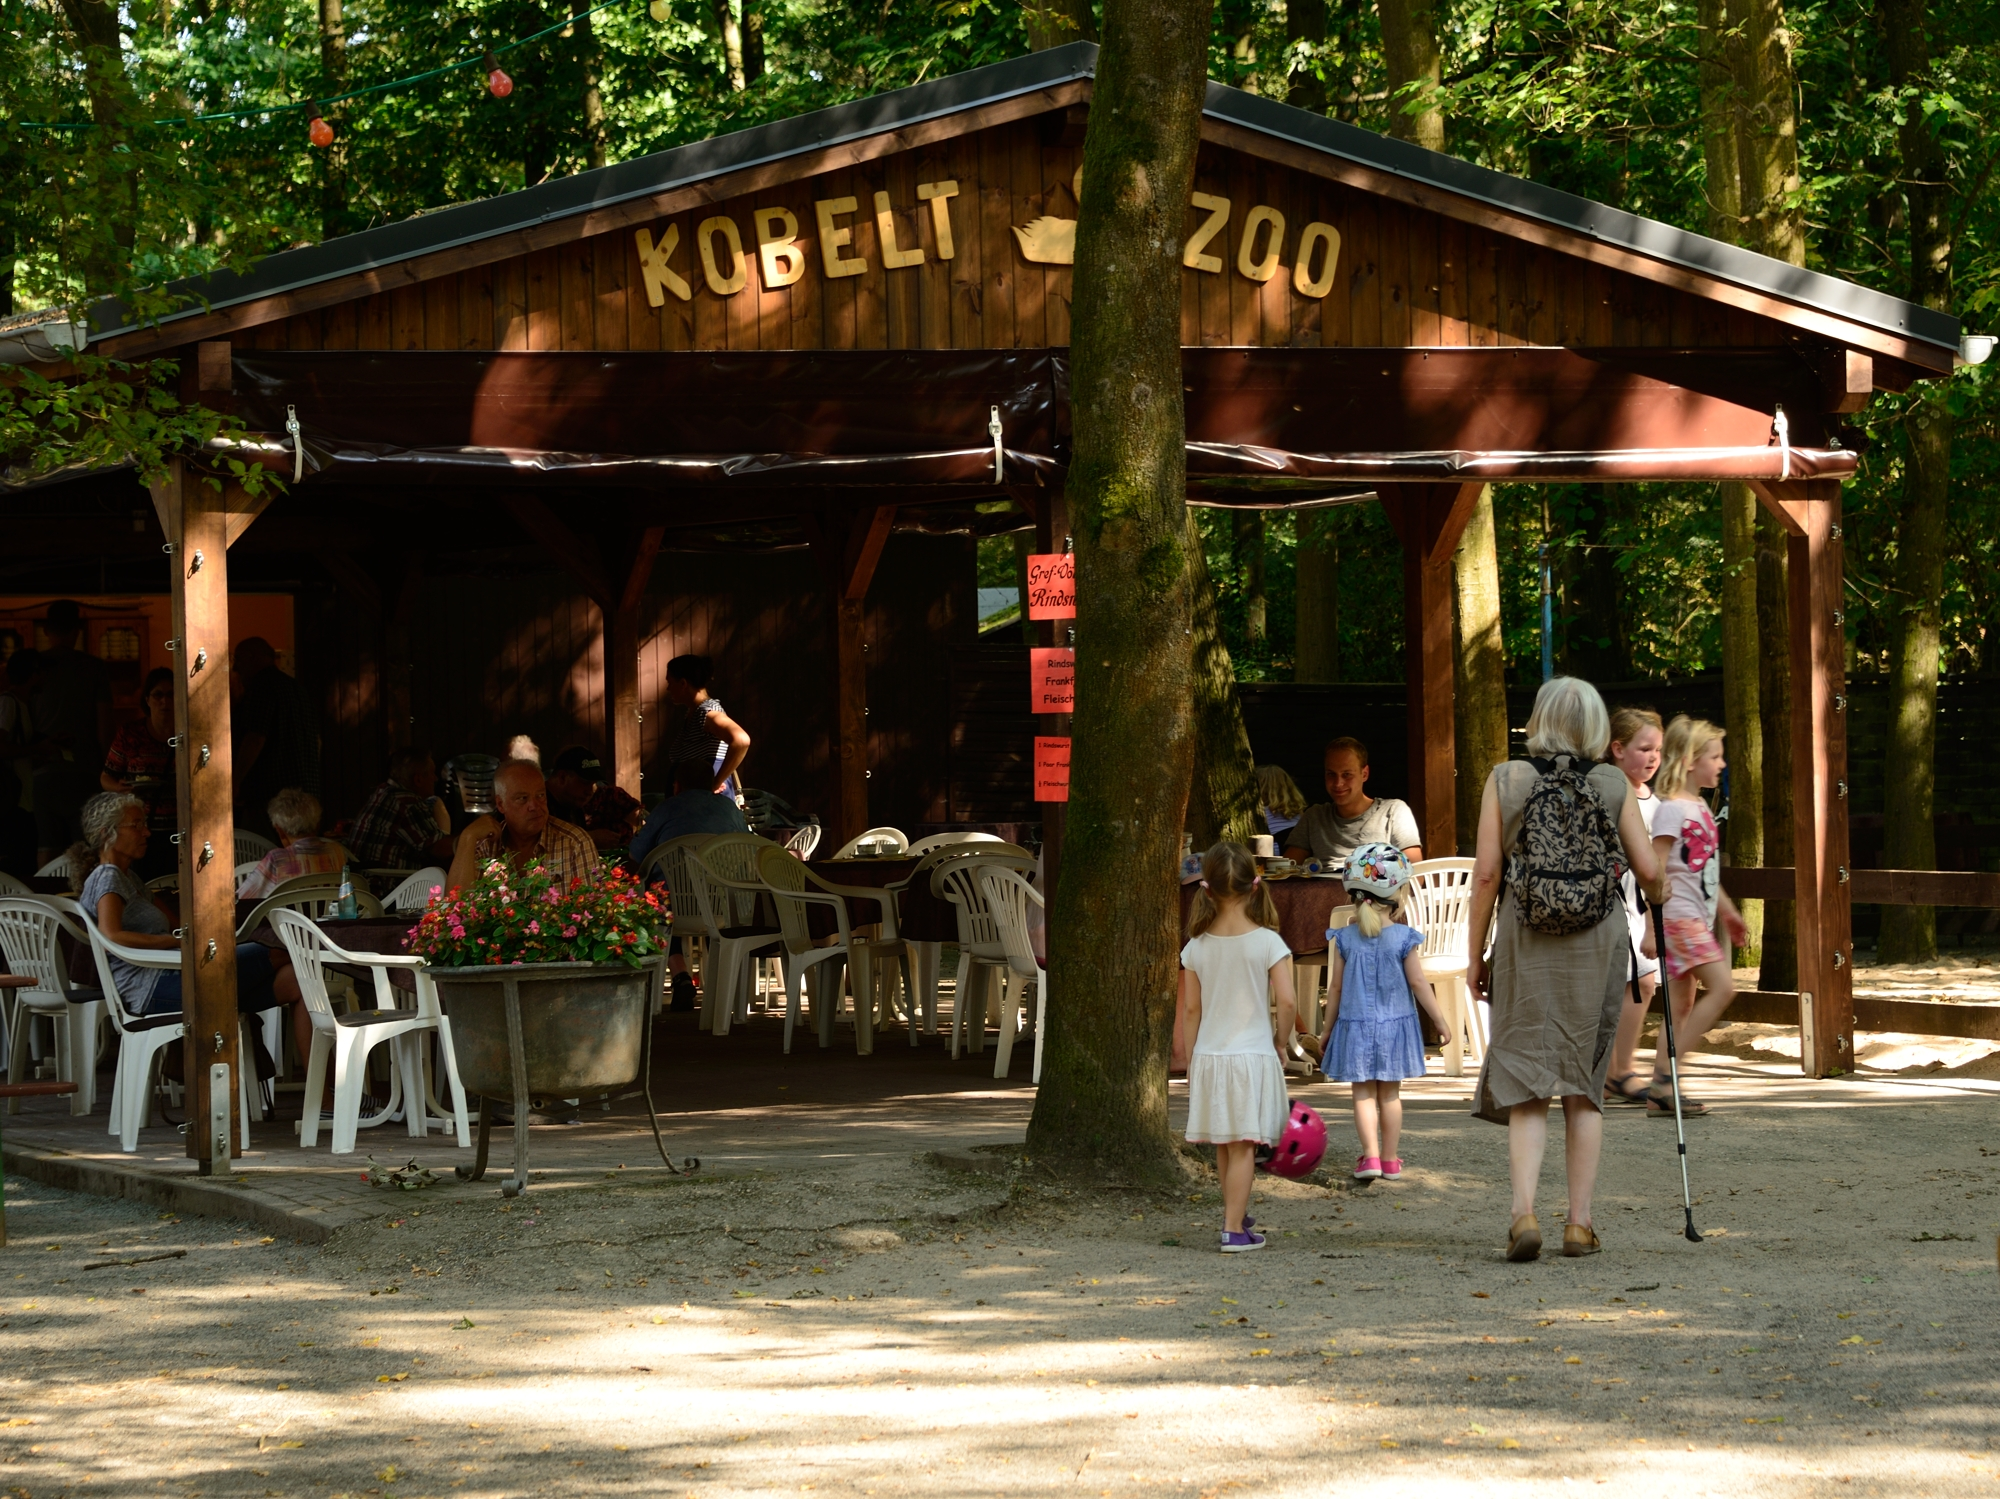 REfreshments at the Kobelt Zoo. (Photo copyright © 2016 by Anne Noble)